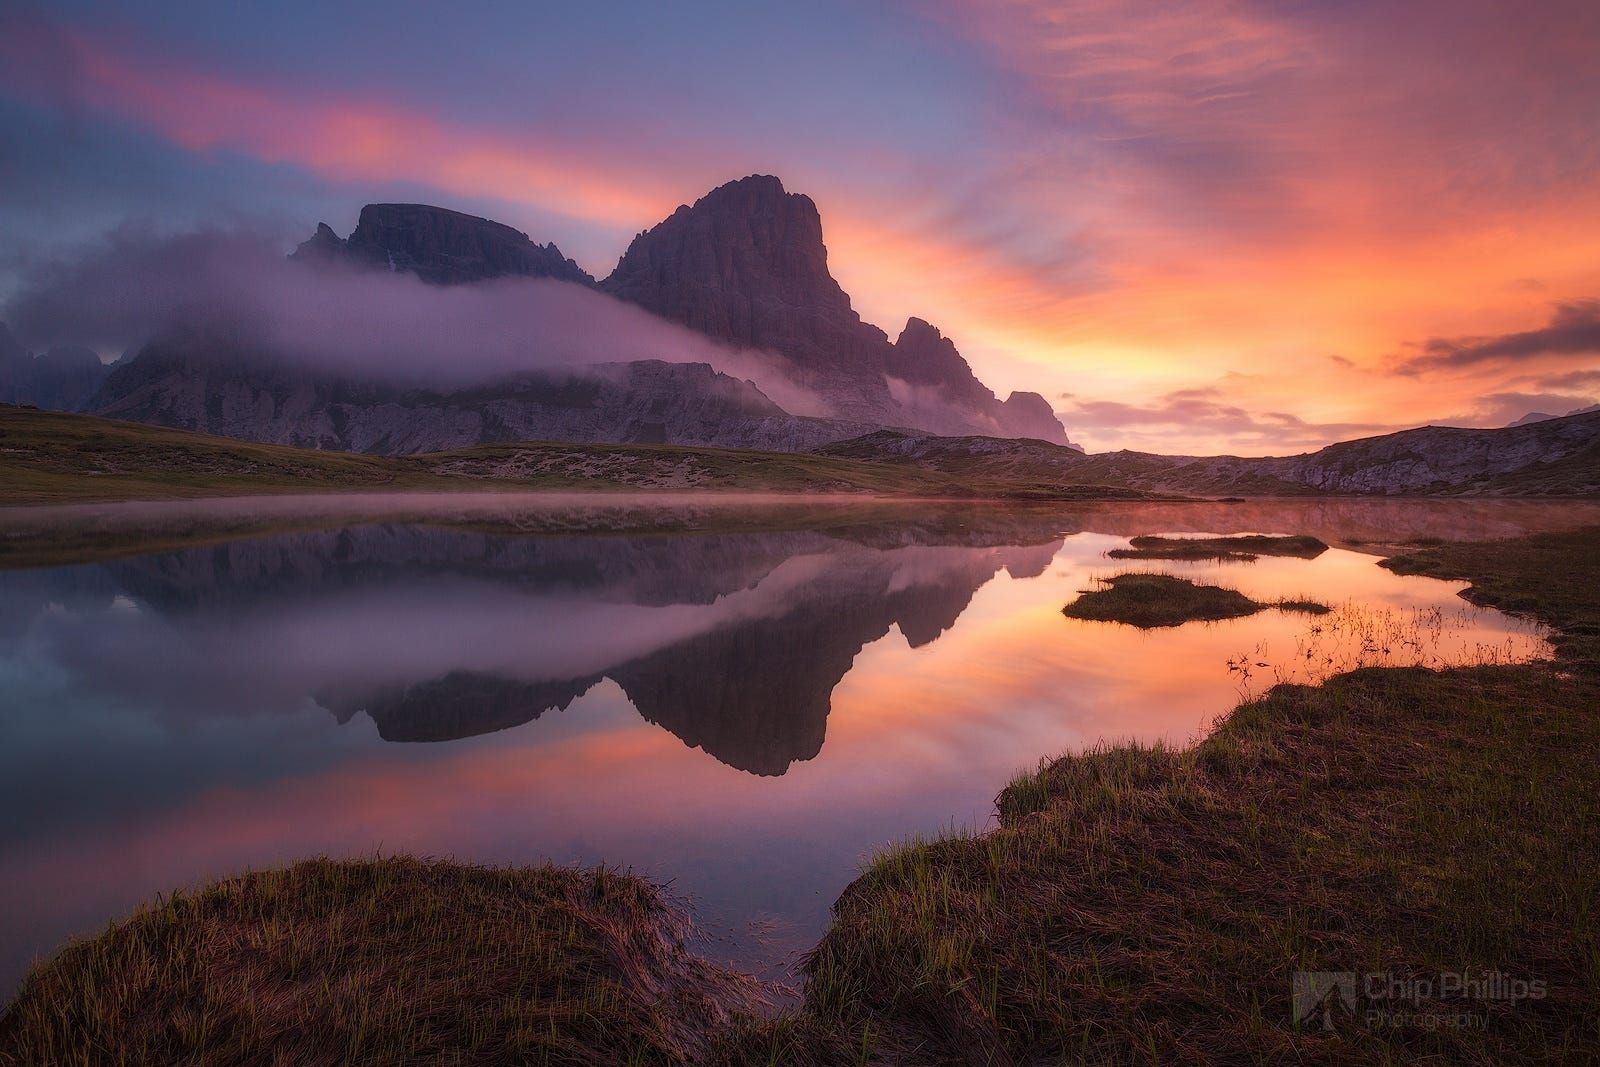 Dolomites Tarn At Sunrise By Chip Phillips On 500px With Images Landscape Photography Landscape Scenery